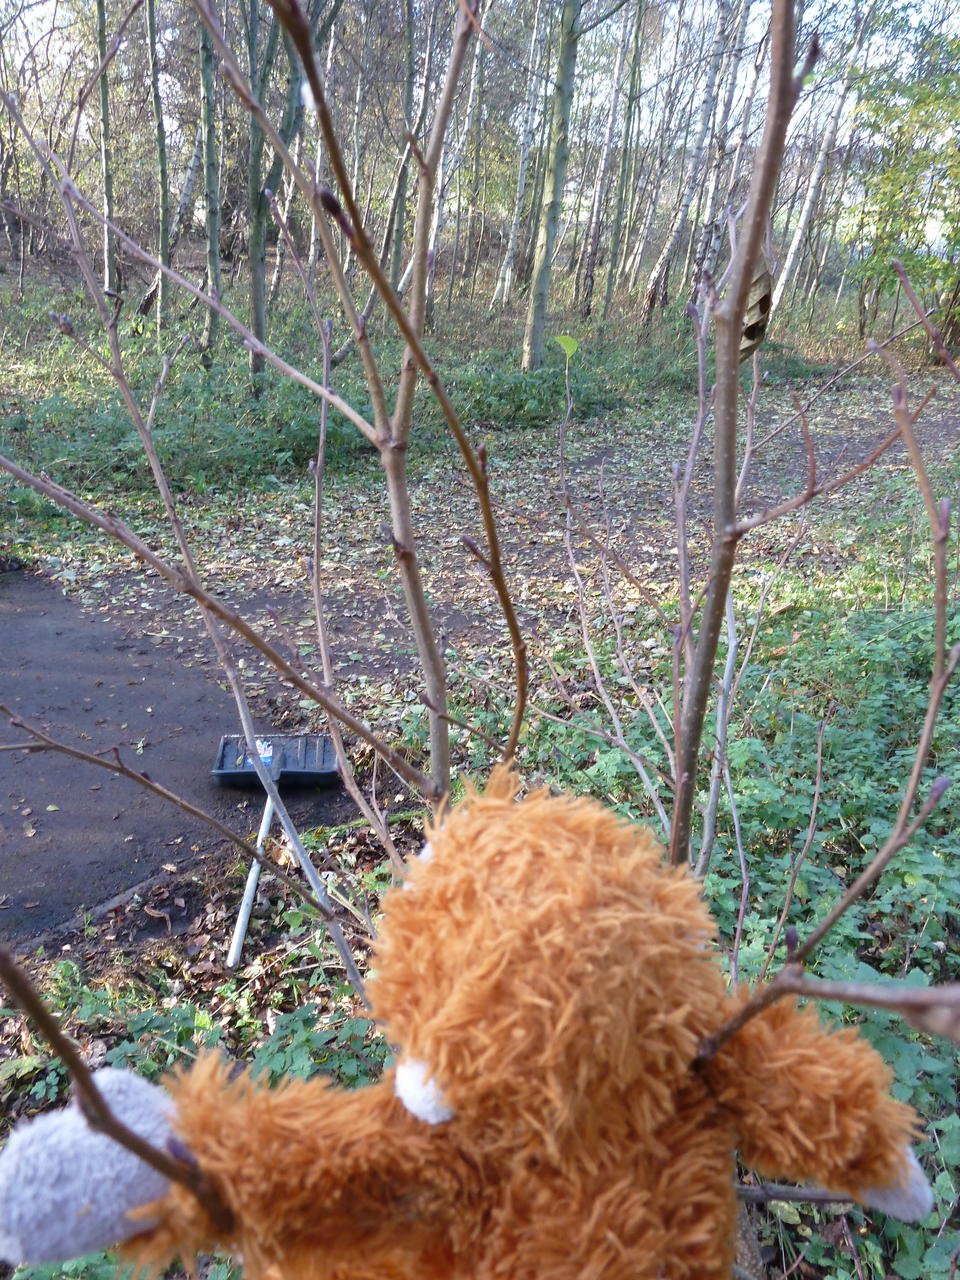 View of the path from the tree; Pongo's head in the foreground